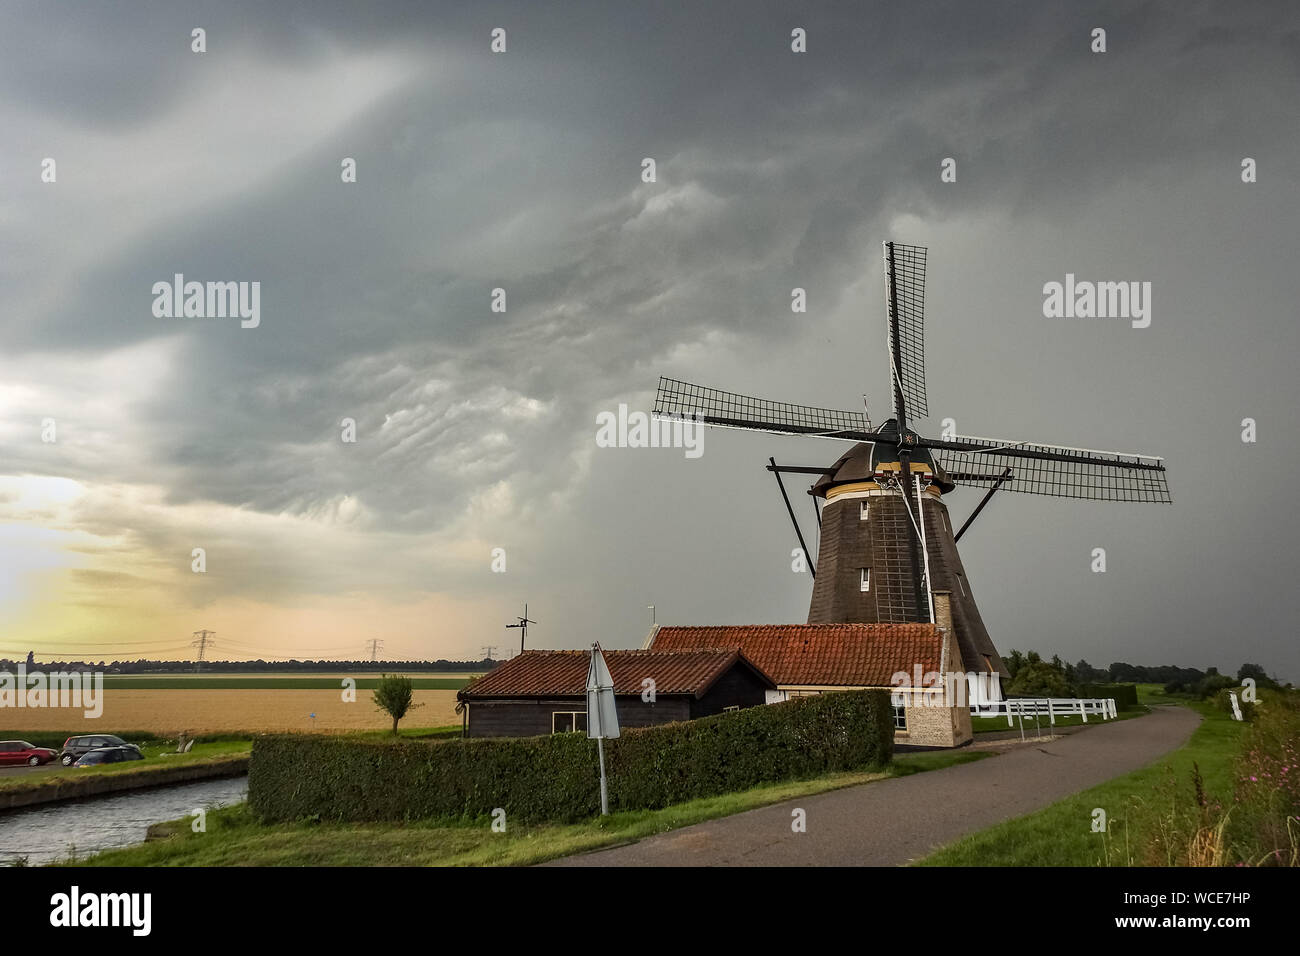 Dutch windmill with an approaching thunderstorm Stock Photo